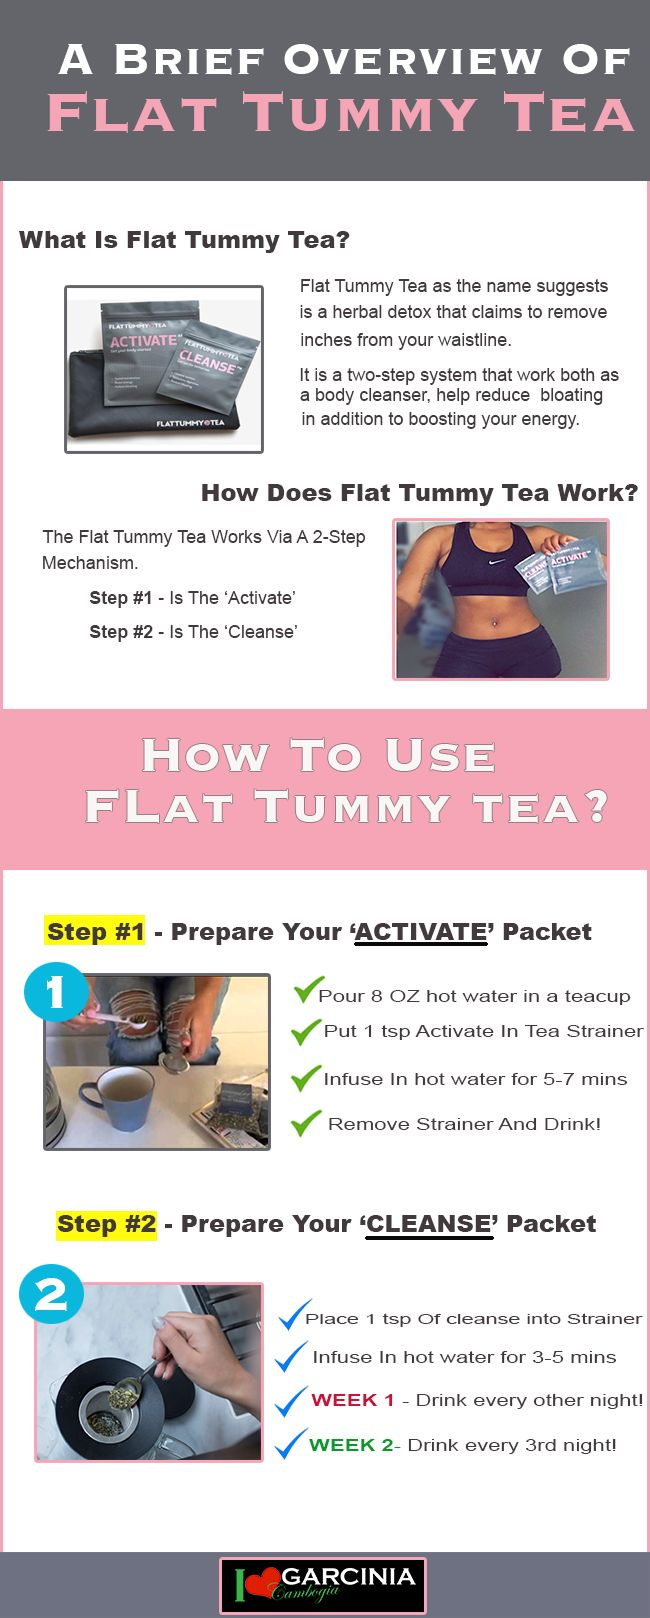 Does The Flat Tummy Tea Really Work? Well Here's How To Take It For Best Results And Read Our 100% Unbiased Review To Get The Full Scoop Of This Very Popular #teatox